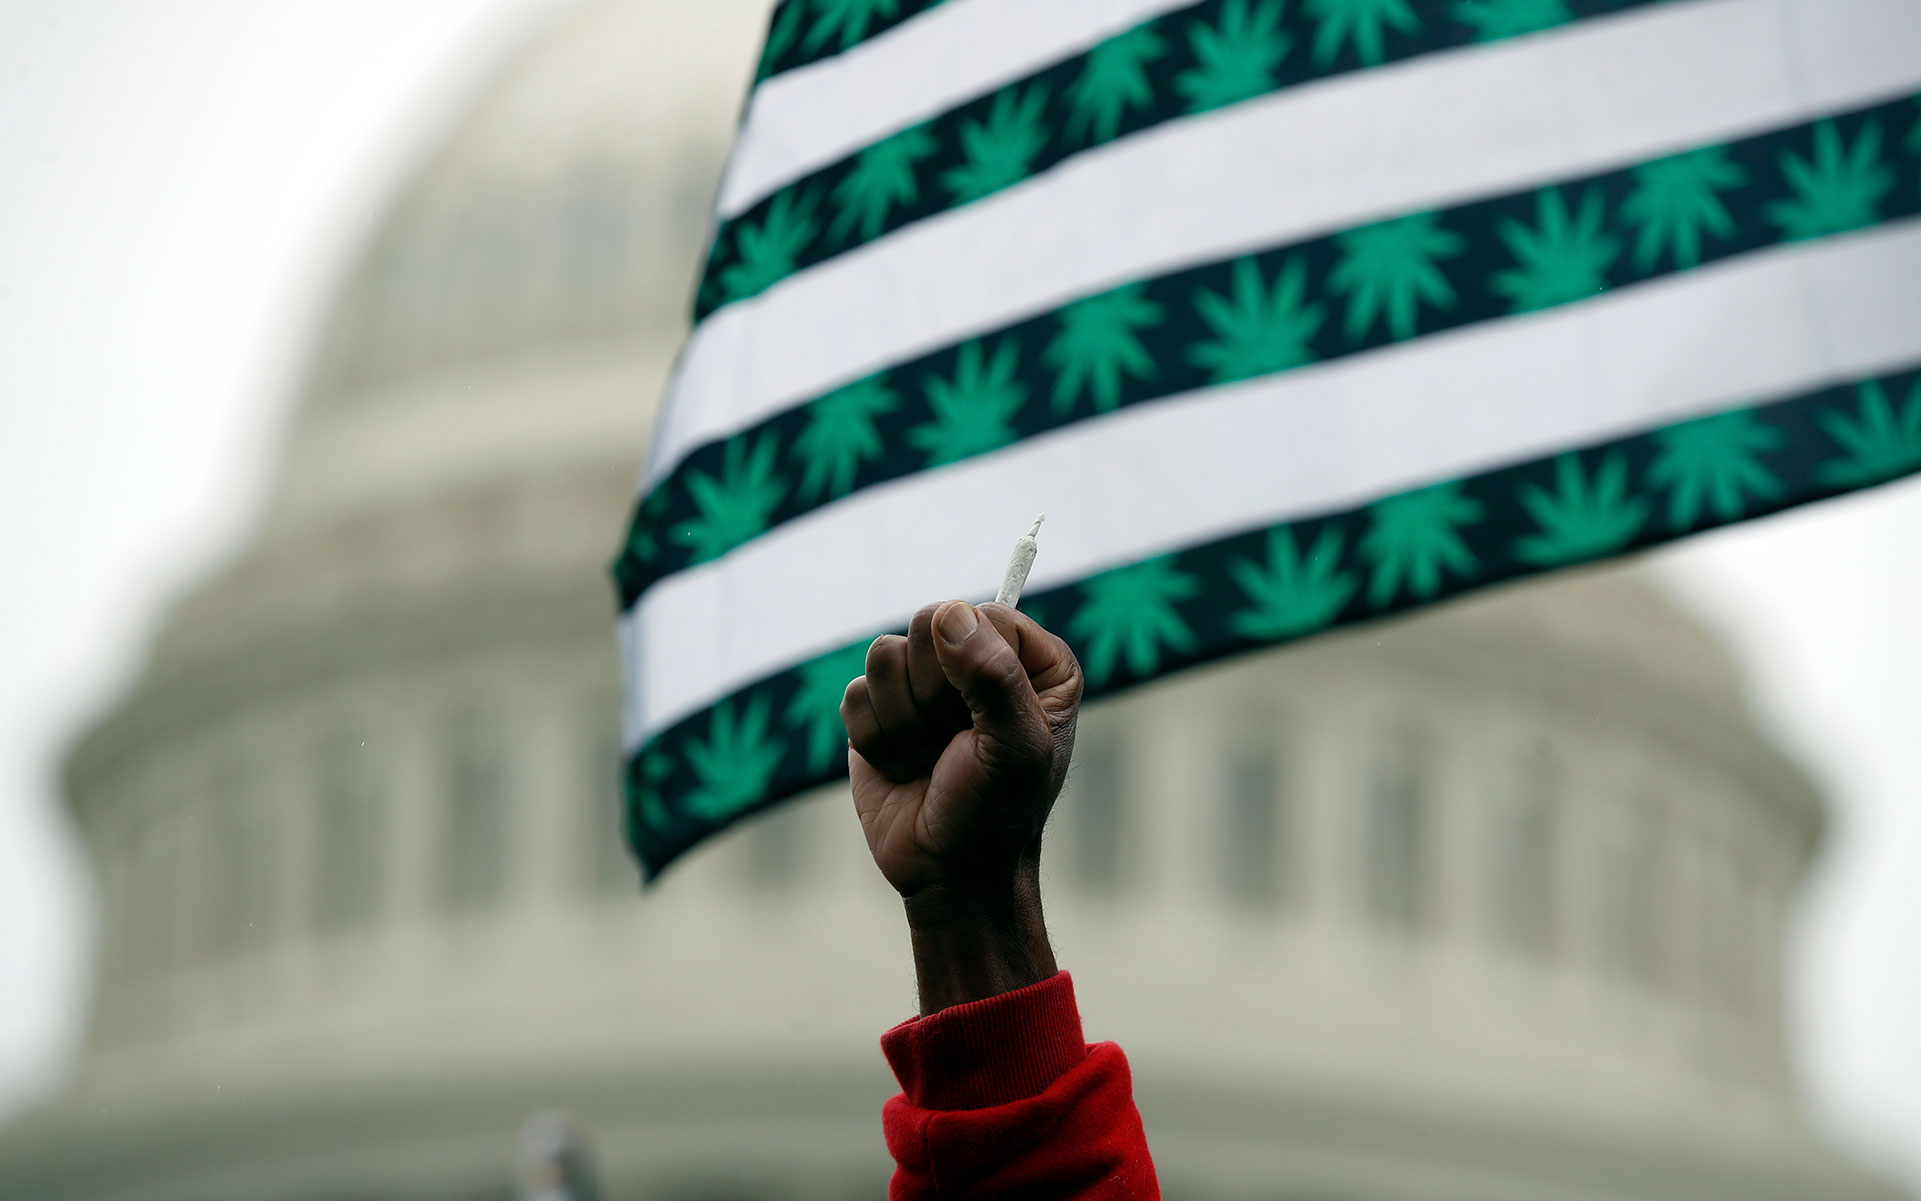 A man holds up a joint during a rally to support the legalization of marijuana on Capitol Hill, Monday, April 24, 2017 in Washington. Smoking pot in public remains illegal everywhere in Washington. (Alex Brandon/AP)